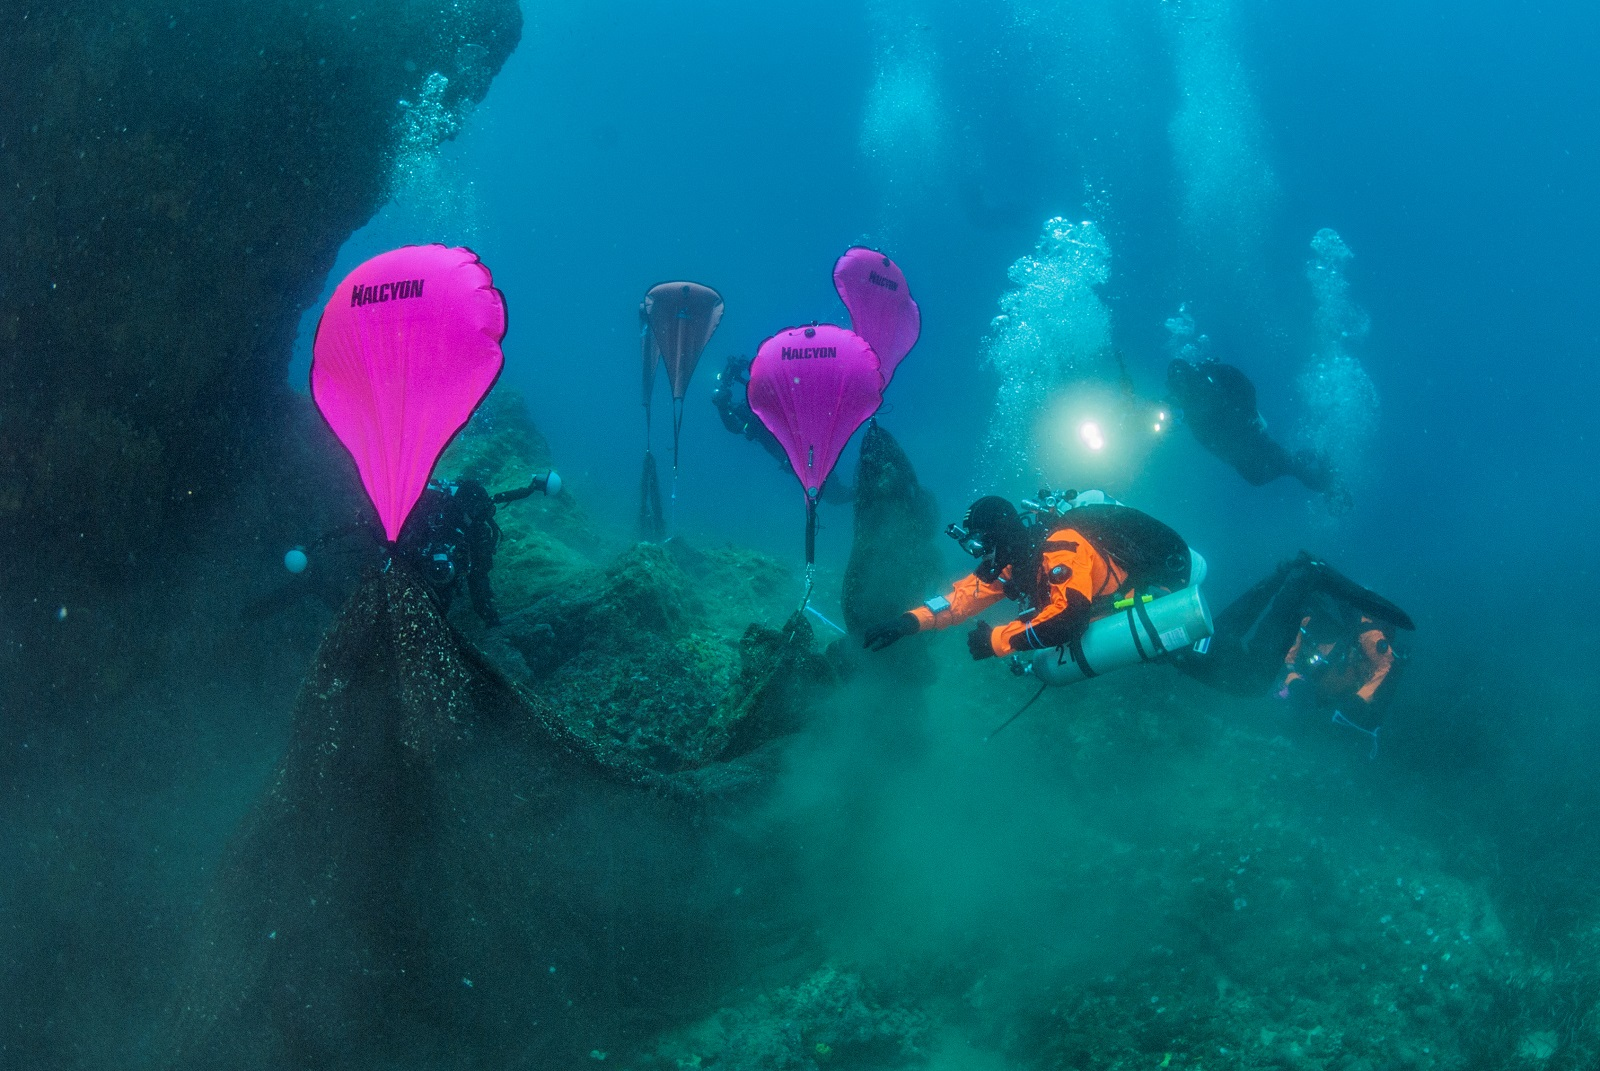 Divers inflate lifting bags attached to a ghost fishing net on the seabed at the village of Stratoni, near Halkidiki, Greece, May 18, 2019. Areti Kominou/Ghost Fishing Greece/Handout via REUTERS